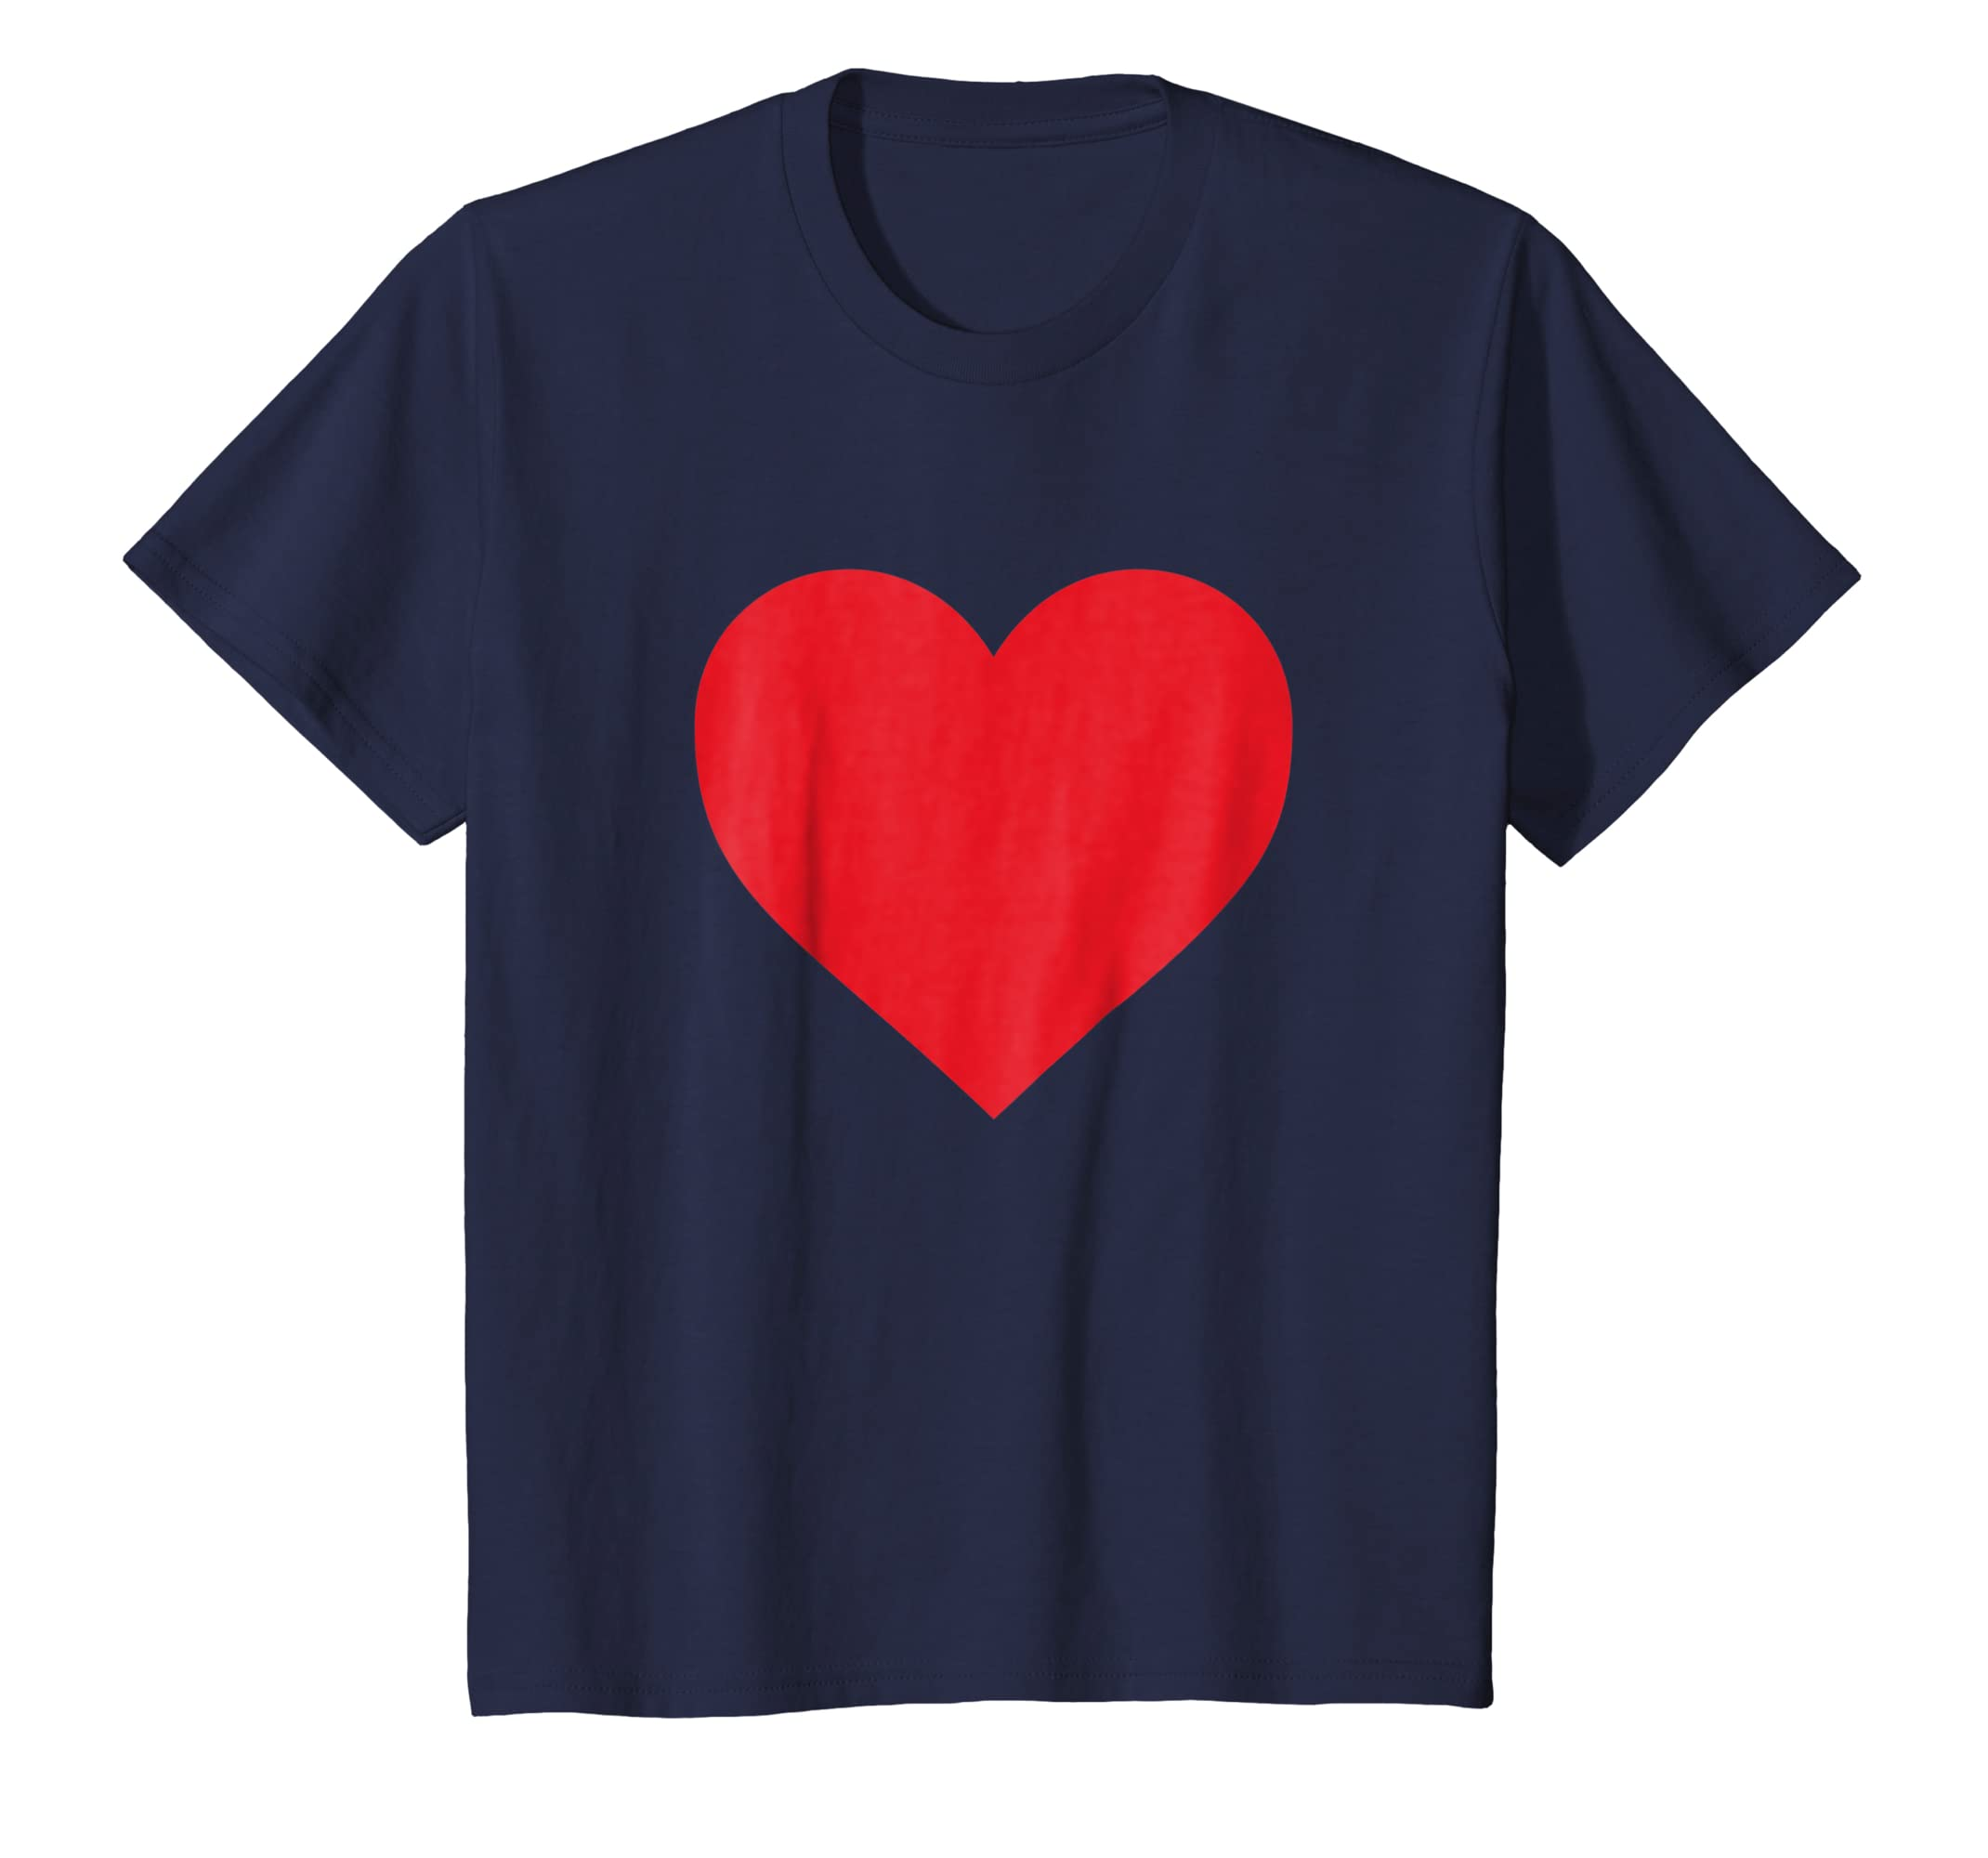 a4297f6f468 Amazon.com  Short Sleeve Red Heart Valentine s Day Shirt Women Girls Top   Clothing